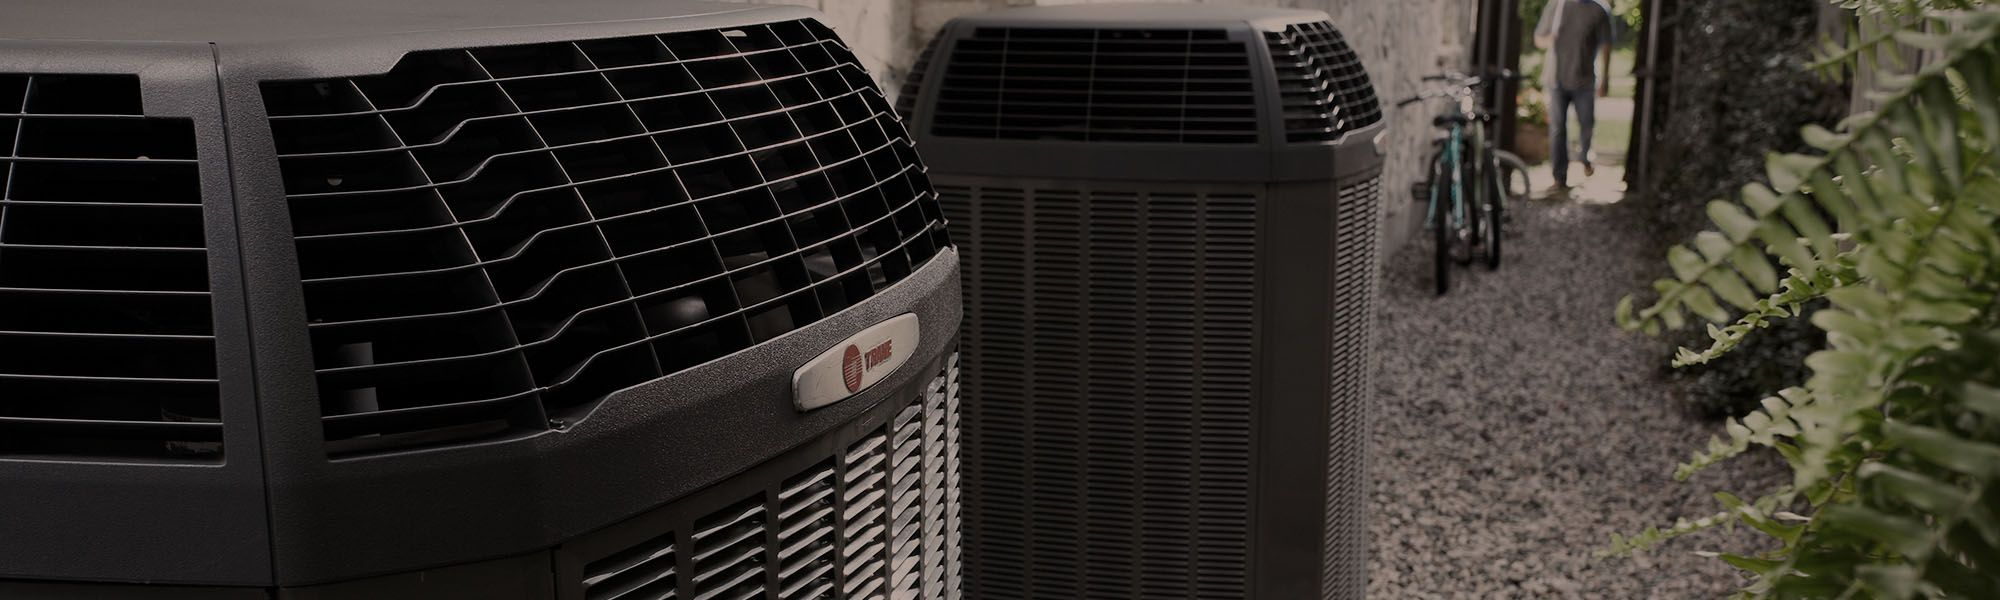 Trane Houston Dealer Hvac services, Hvac brands, Trane